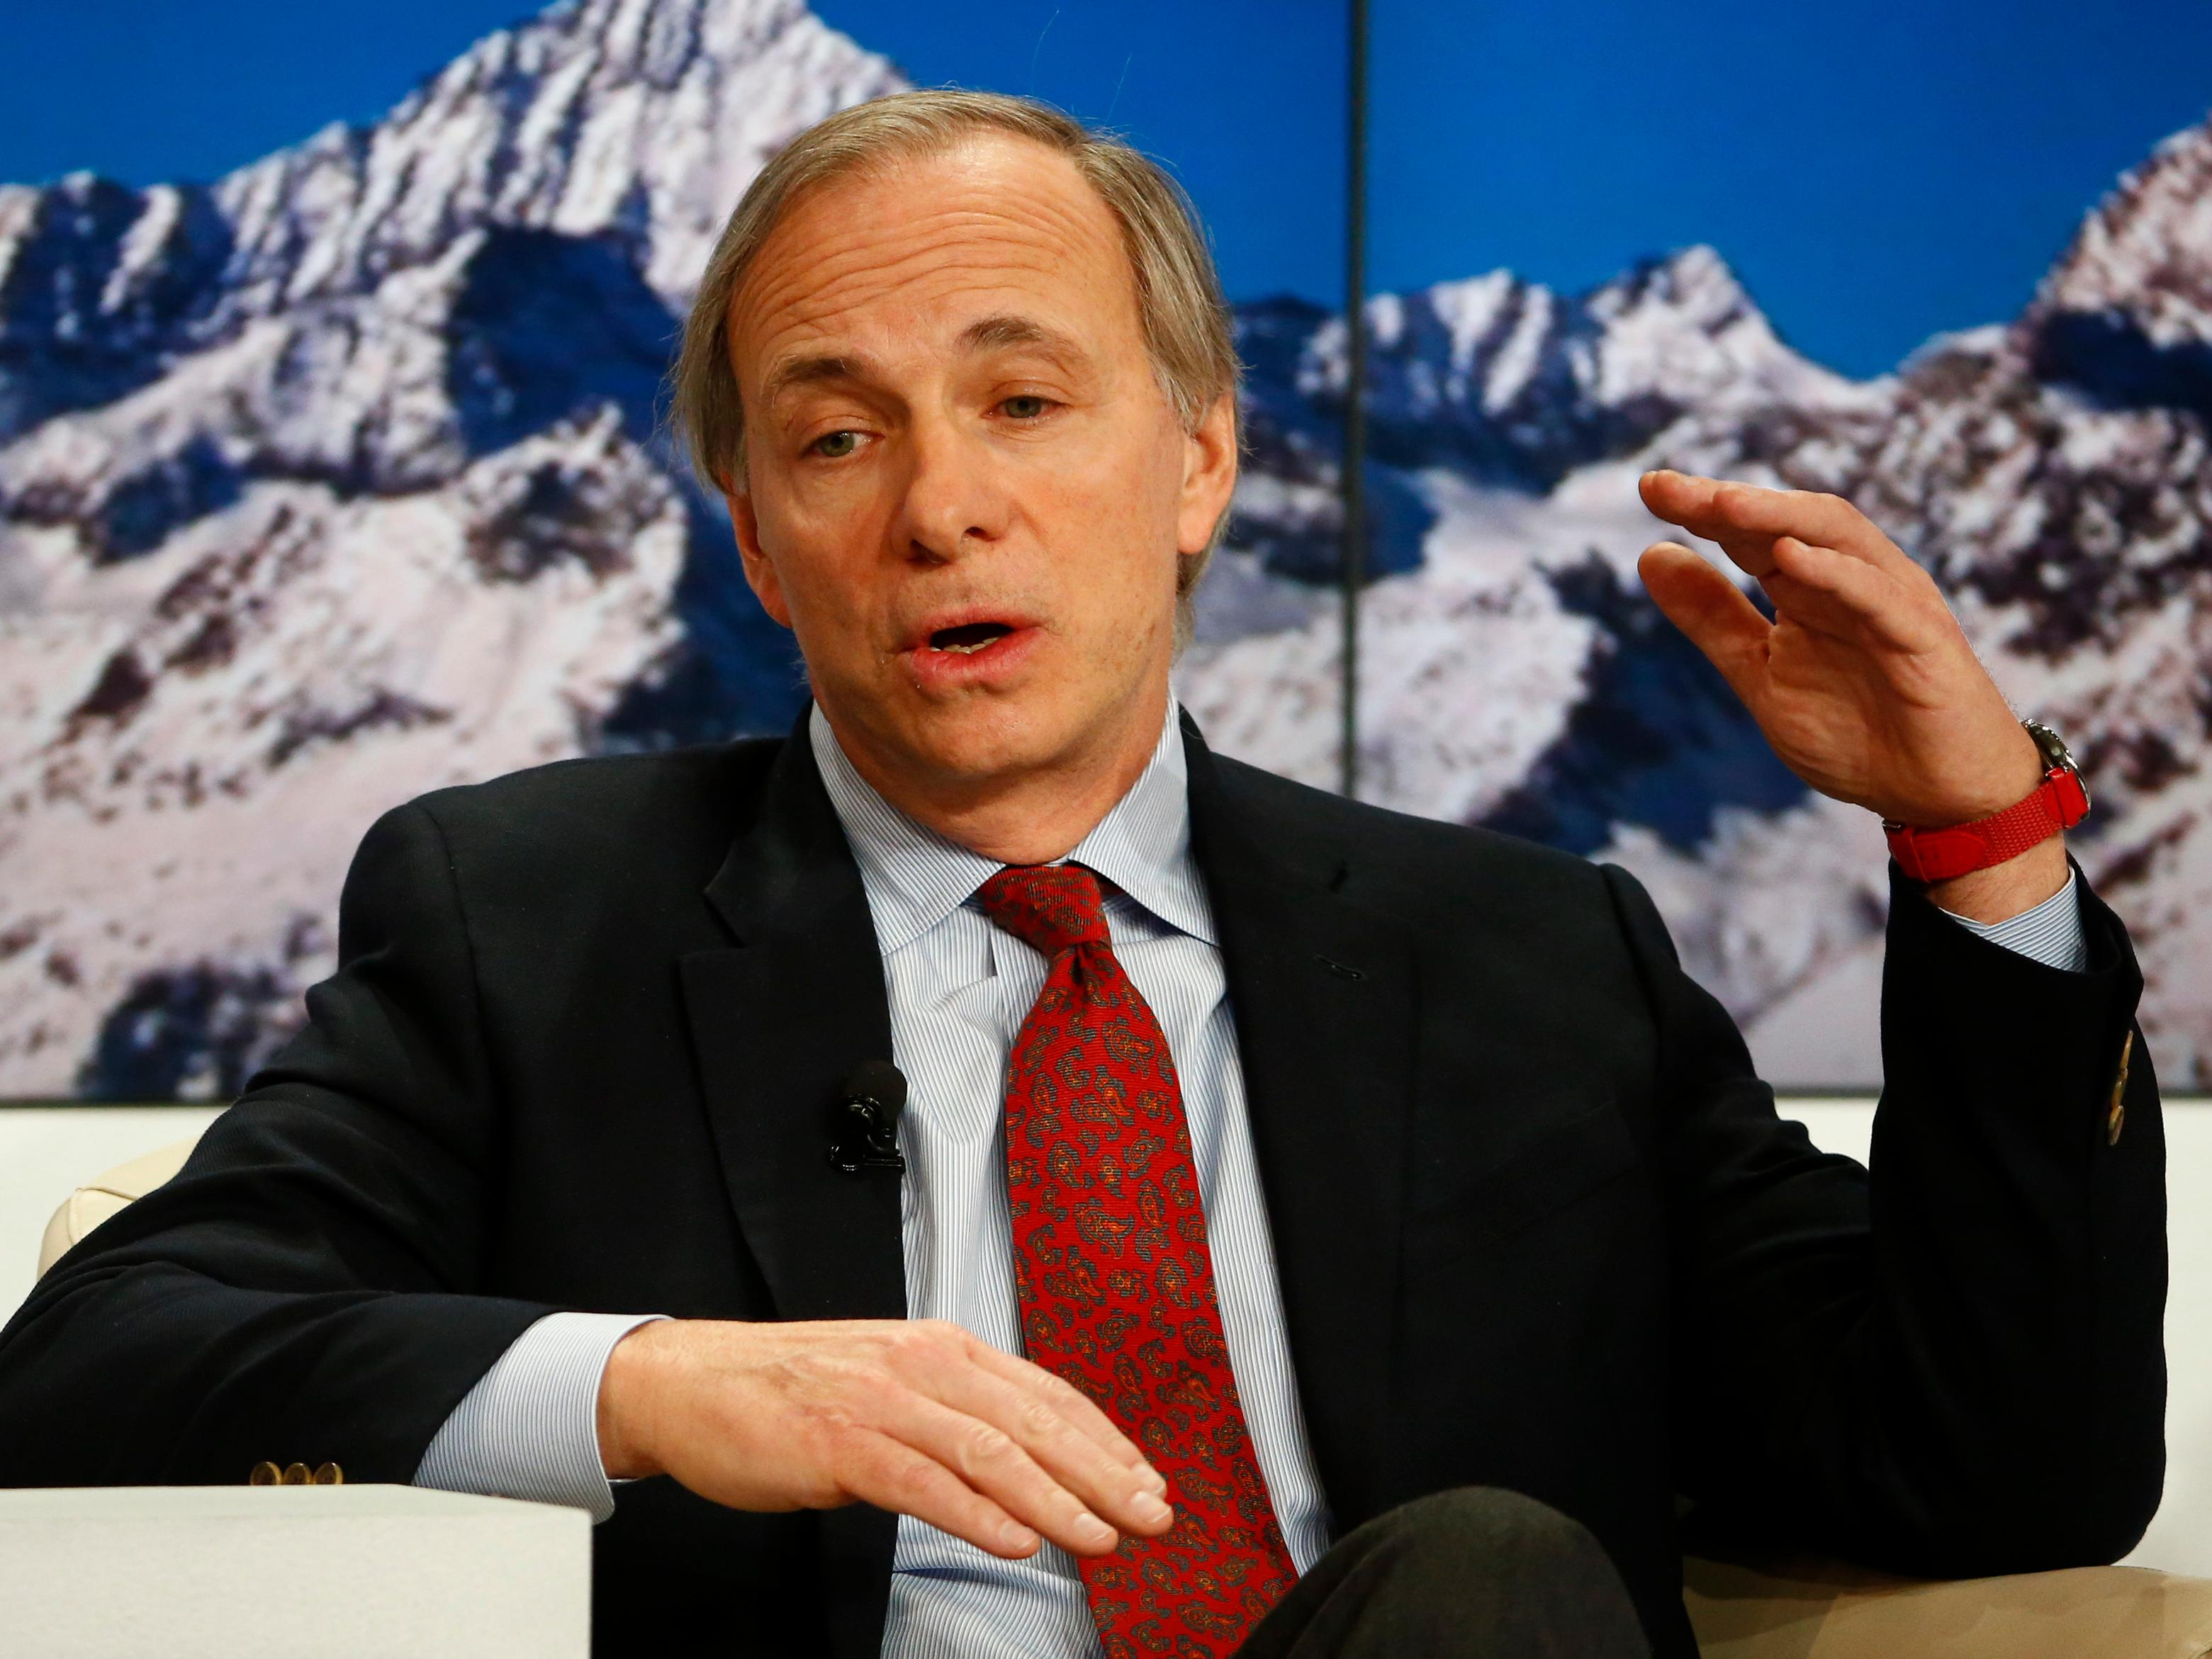 Ray Dalio's bizarre principles are being put to the ultimate test